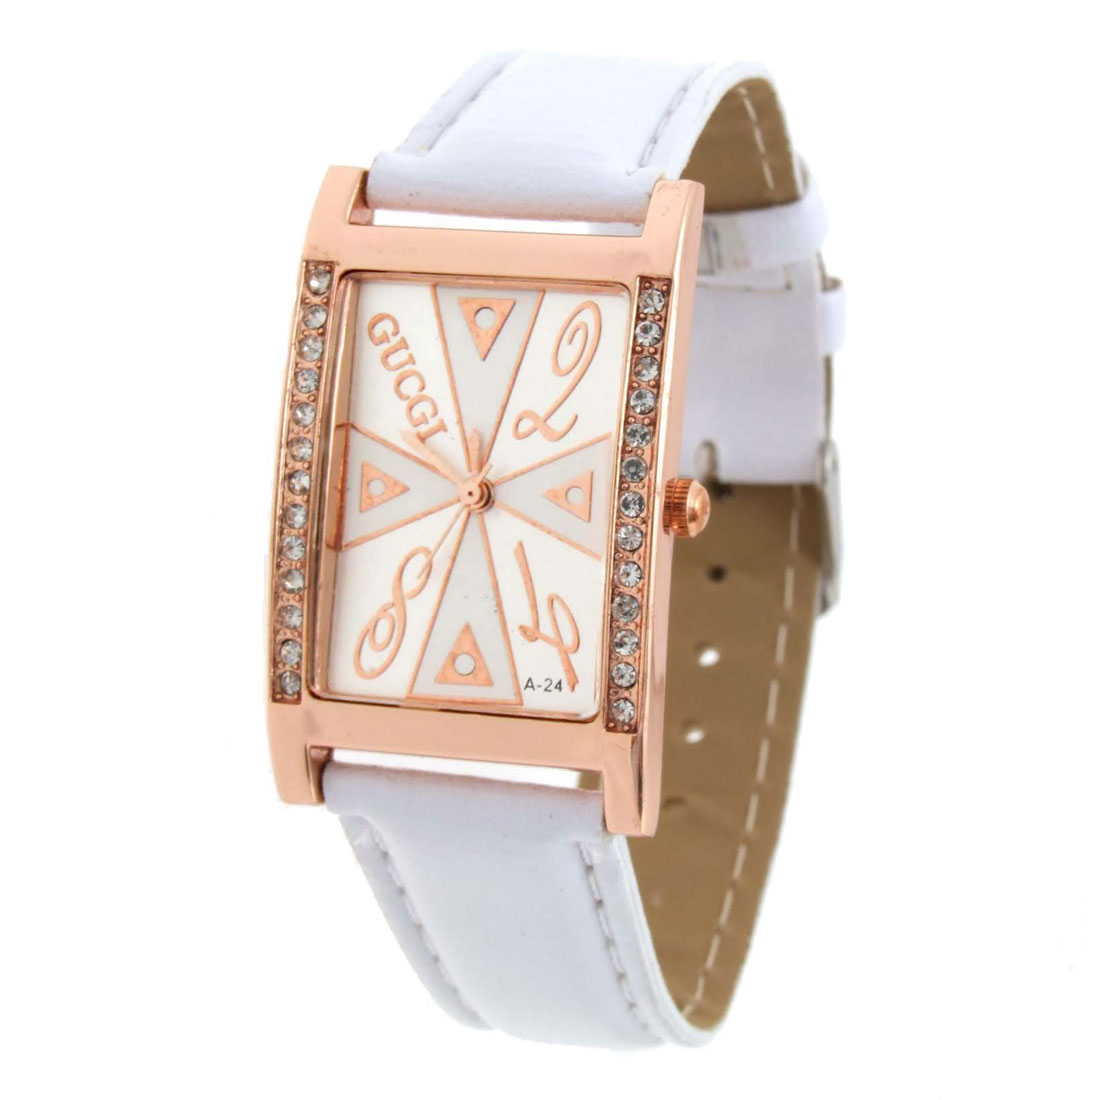 Fashion Jewelry White Faux Leather Wrist Quartz Watch - Inactive